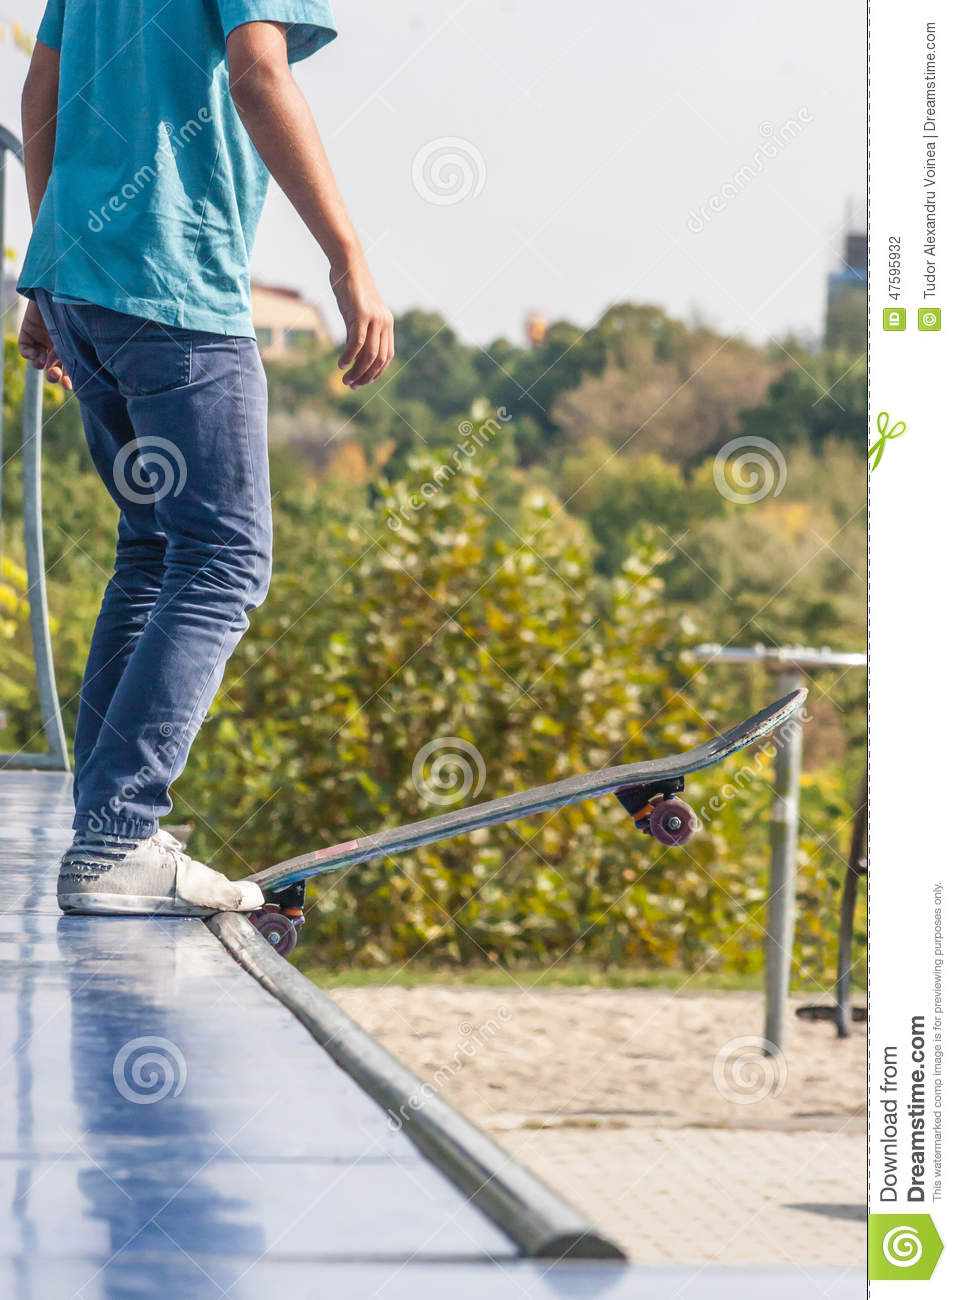 Teen with skateboard ready for a stunt on a half pipe ramp.